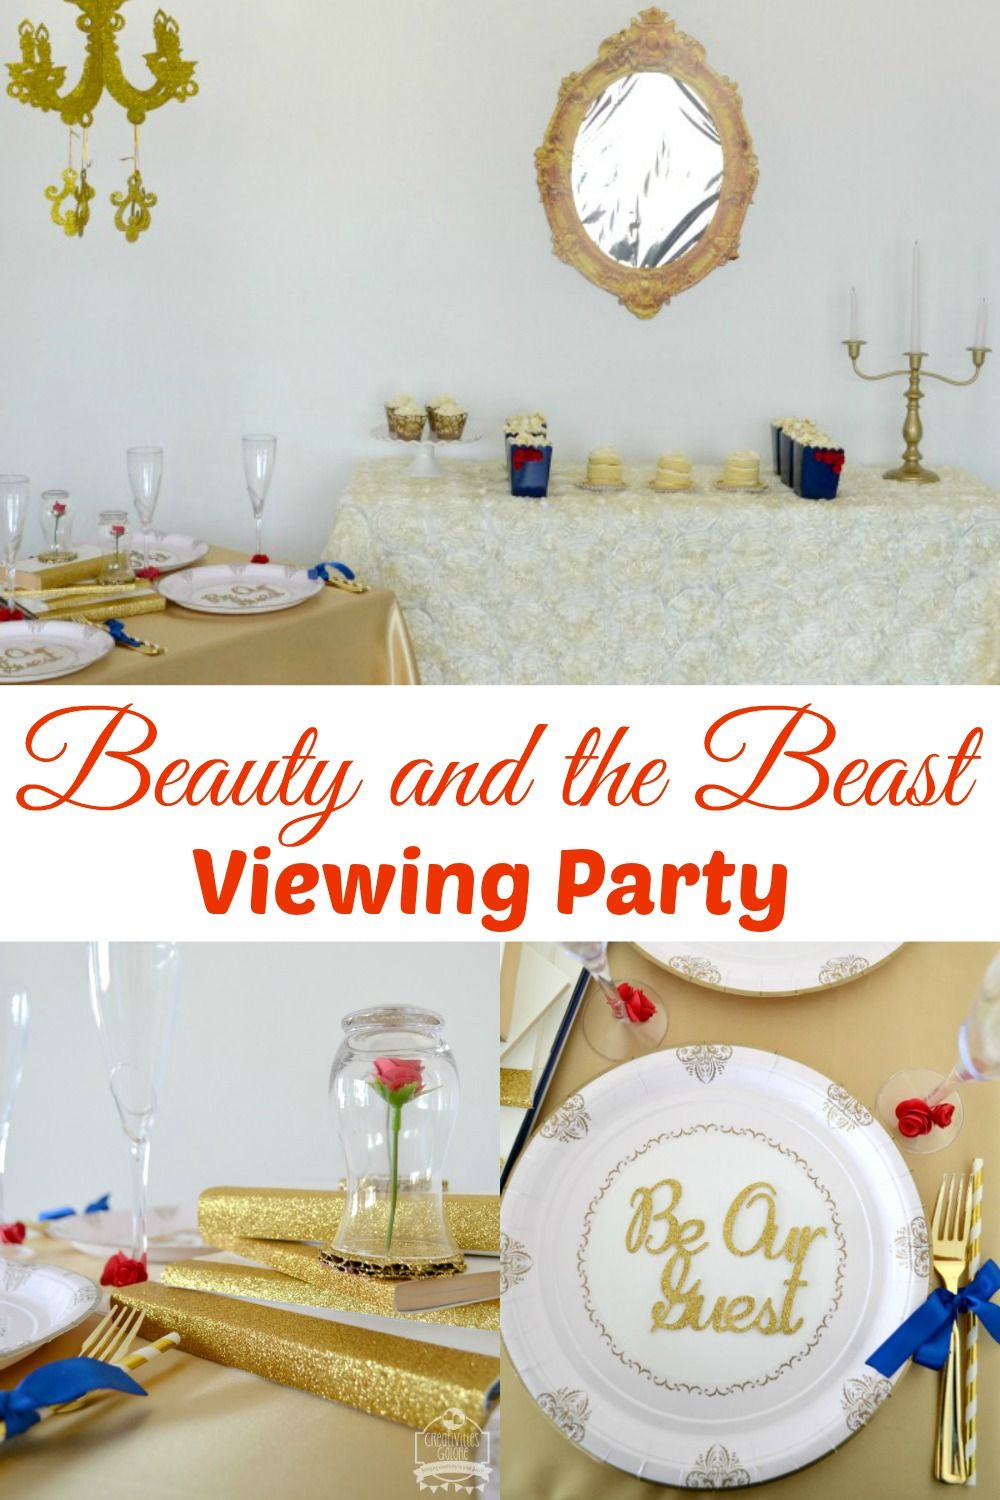 This Beauty and the Beast movie viewing party has some great budget ...